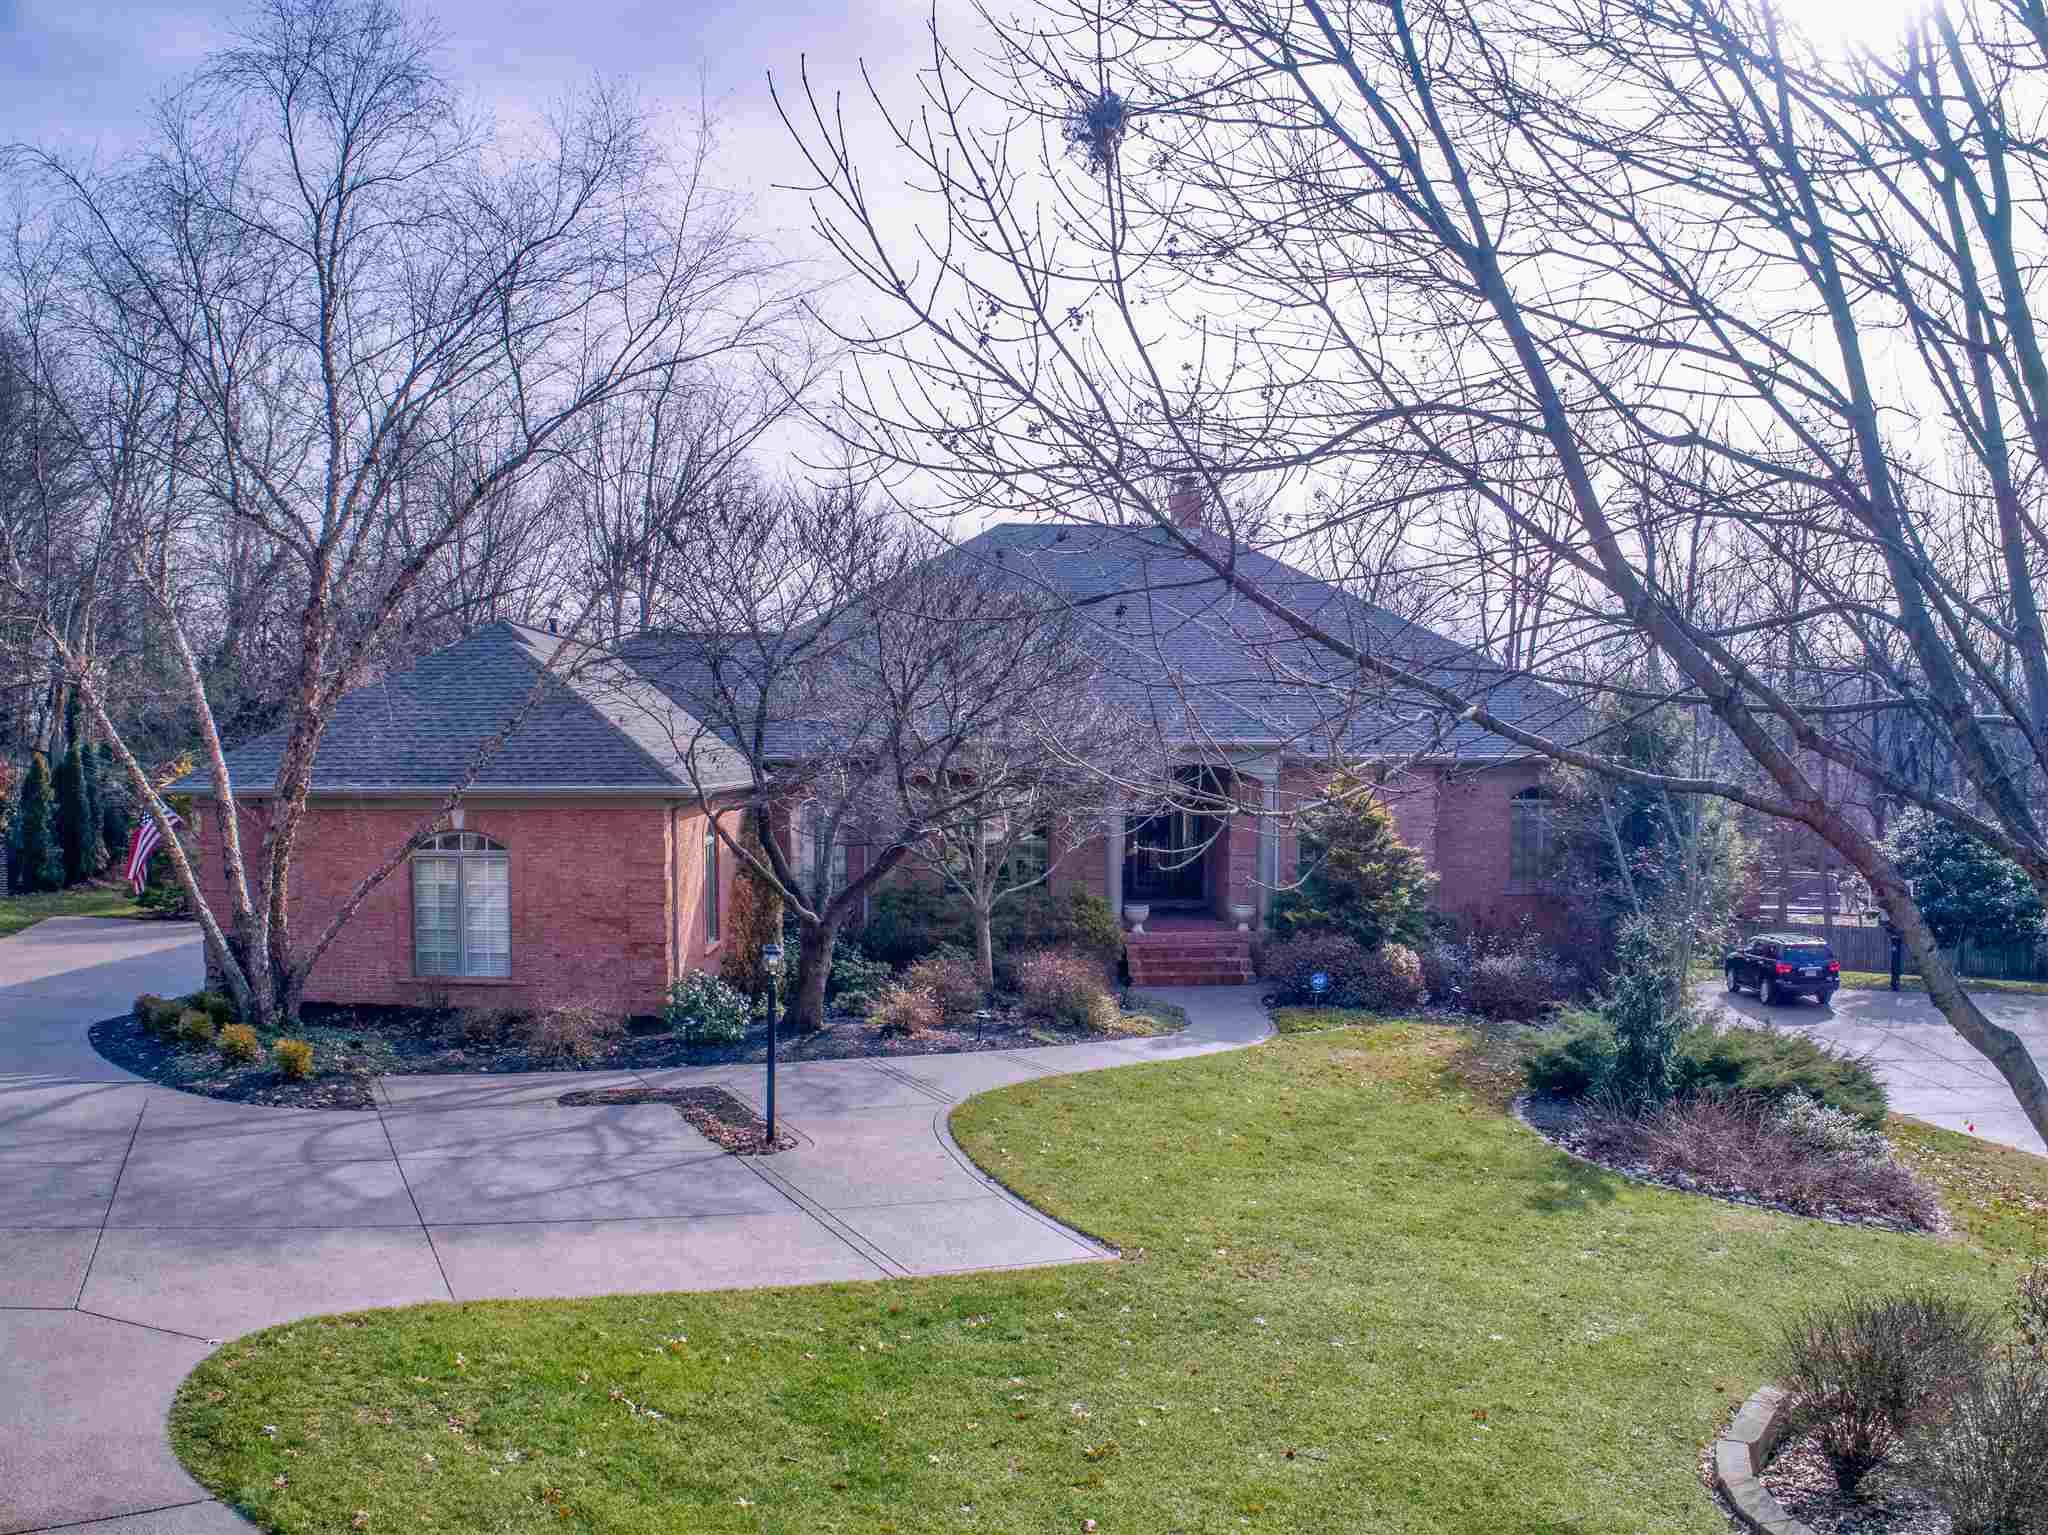 This custom built home is truly one of a kind. The sprawling ranch located in The Oaks Subdivision is deceptive in size. From the road you can never imagine what is inside. Extensive landscaping welcomes you as you arrive. Hardwood floors flow from the foyer to the dining room. The formal living room with 20' vaulted ceiling overlooks a two story indoor atrium with natural light galore and the backyard. The kitchen will definitely please the cook of the household. An abundance of cabinets and counter space including walk-in pantry, planning desk, raised breakfast bar and large island are just a few of the amenities you will find. The hearth room off the kitchen is where you will enjoy chilly evenings around the fireplace. The laundry room provides ample space with a utility sink and another planning desk. The master bedroom suite area is generous in size with an adjoining study including a duel sided gas fireplace, rich wood bookcases, and cabinets. An attached master bath has double vanities, large tub and separate shower. The walk-in closet has custom built-in shelves and drawers. Two additional bedrooms with a shared full bath, 2 half baths, a meditation area and cubby lockers complete the main floor. The lower level provides a wonderful family room with fireplace and built-in bookcases. Three more bedrooms, one full bath and another half bath along with a kitchenette, craft area, pool table or exercise room and a huge unfinished storage room finish off this level.  Outside you will find the most relaxing covered porch ever. The private, park like backyard has blooming red bud trees in the spring, with 18 species of trees on the property. The heated pool has an automatic cover and diving board. Total of 6 bedrooms, 3 full baths, 3 half baths, 3 car garage, and a safe room.  Extra features include walk up attic storage, ADT security system, whole house wired for sound system, and  backup generator.